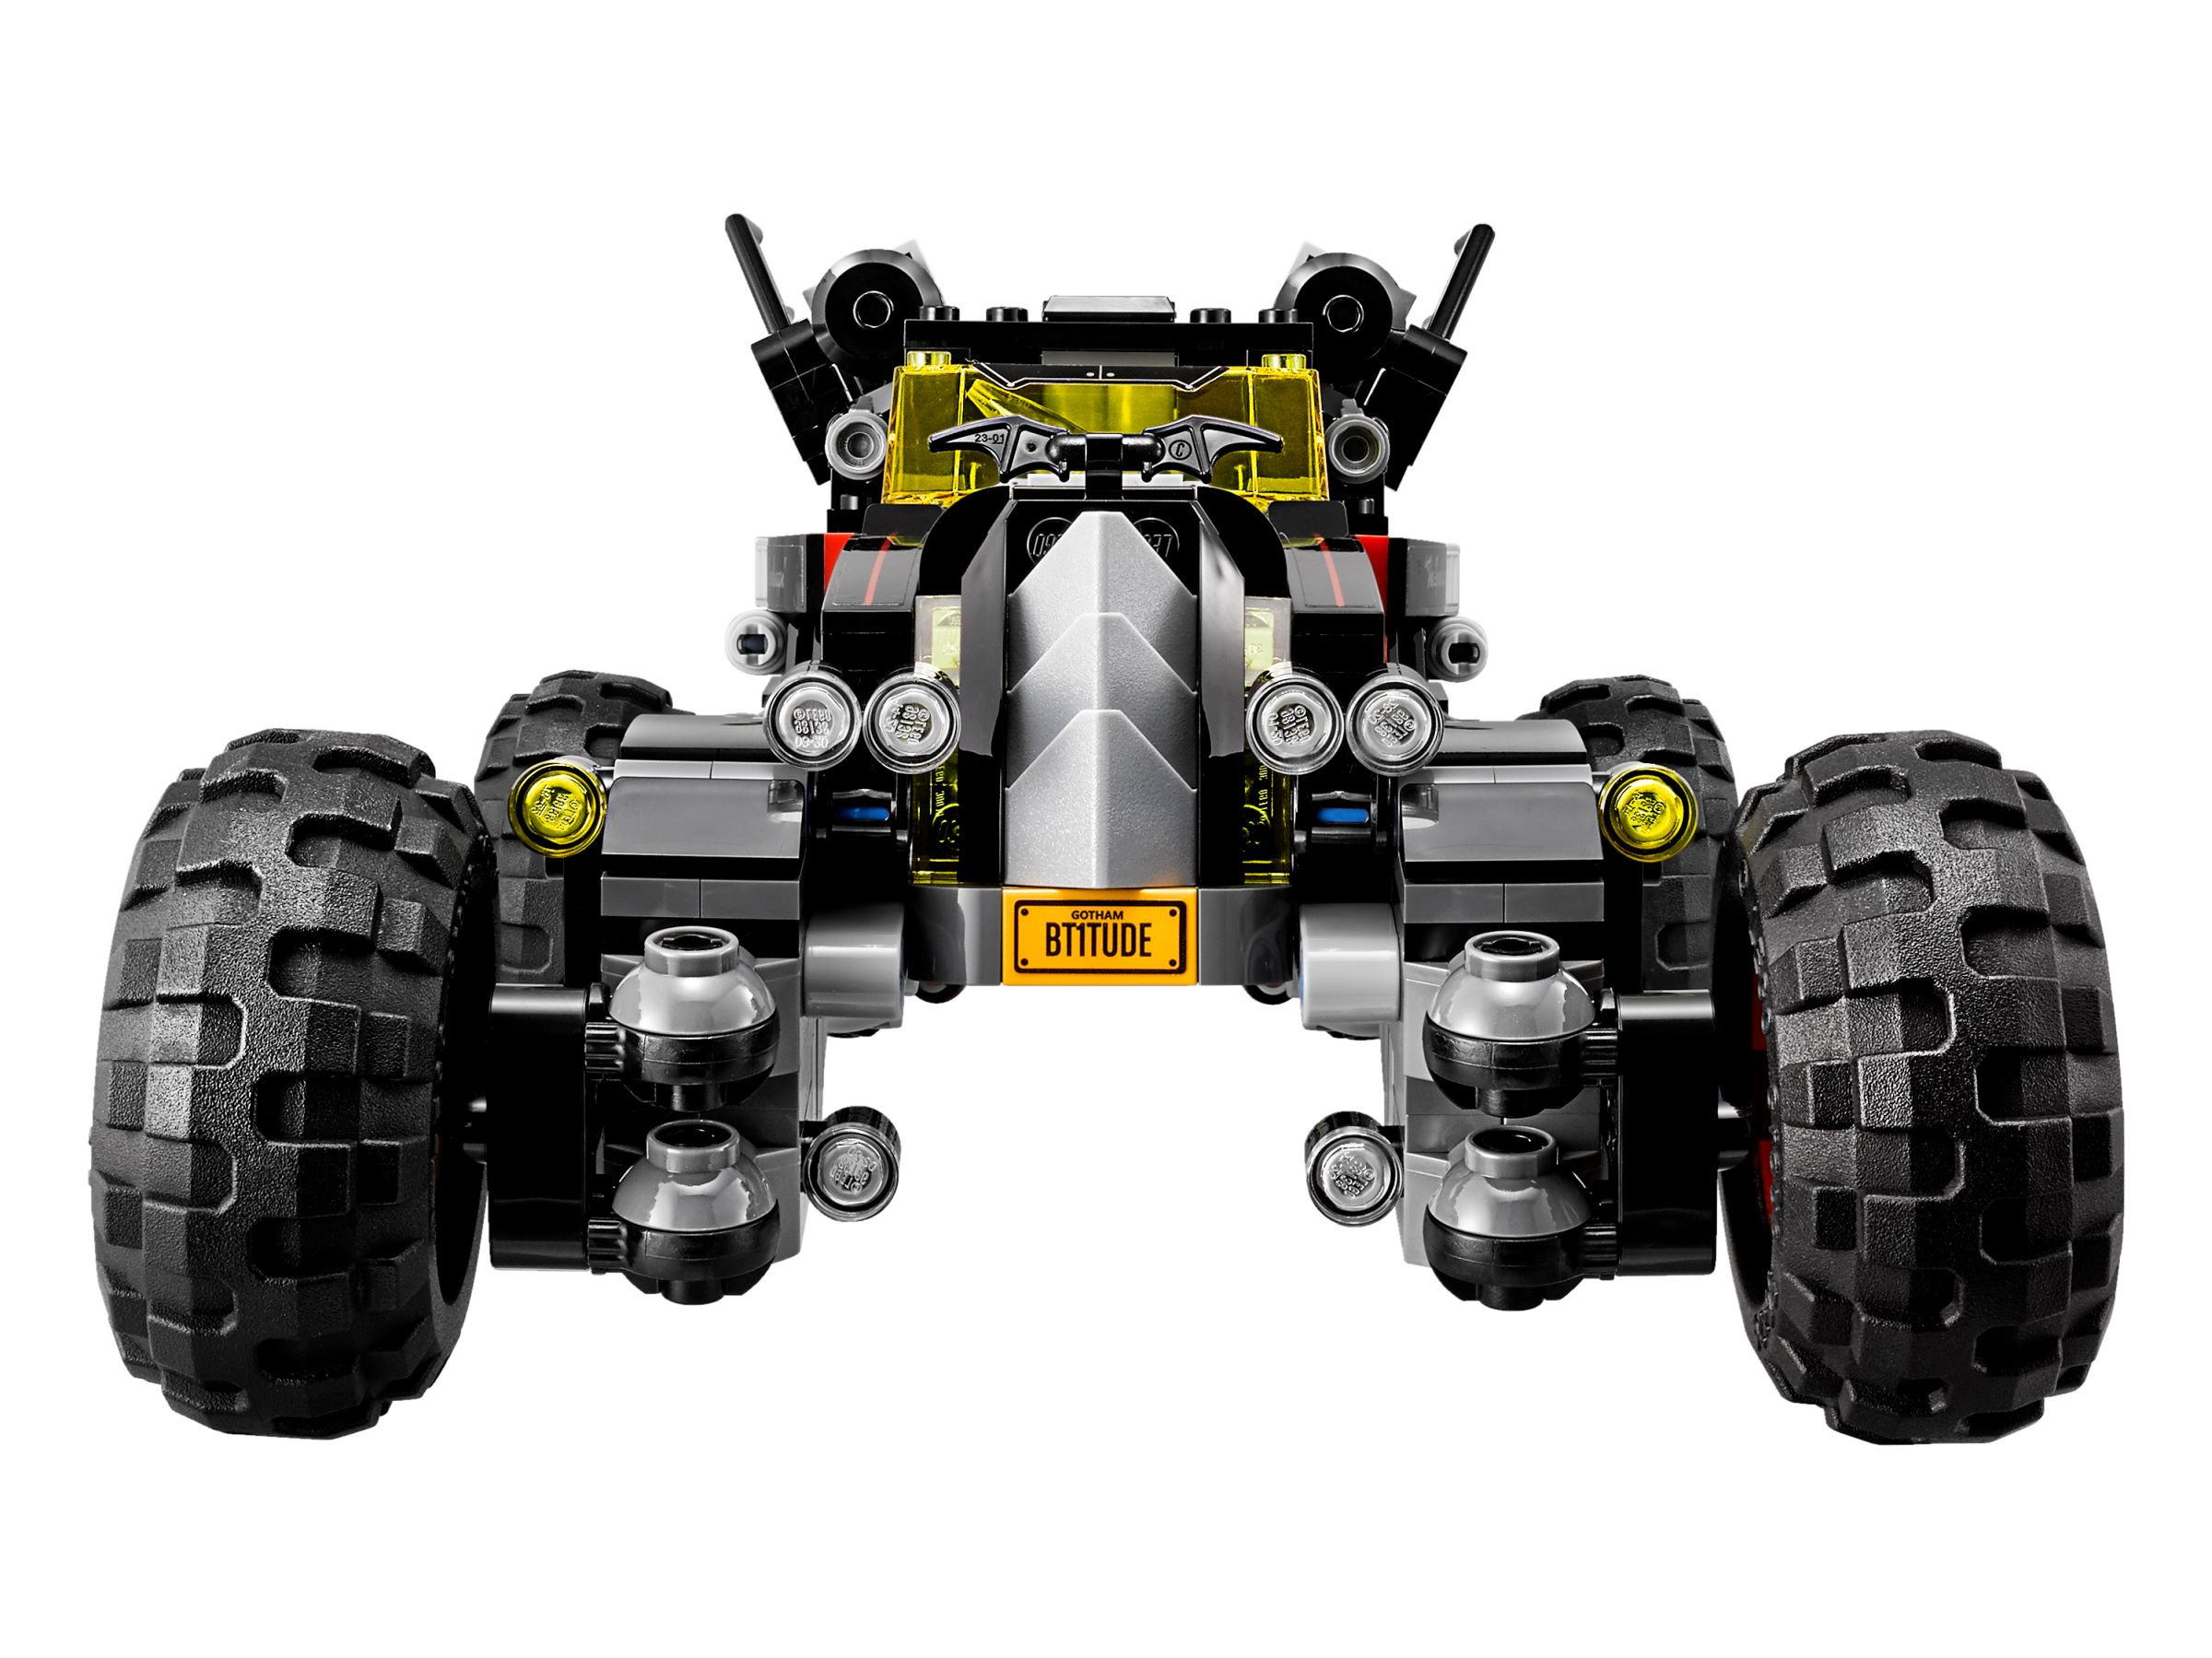 LEGO The LEGO Batman Movie 70905 Das Batmobil LEGO_70905_alt6.jpg